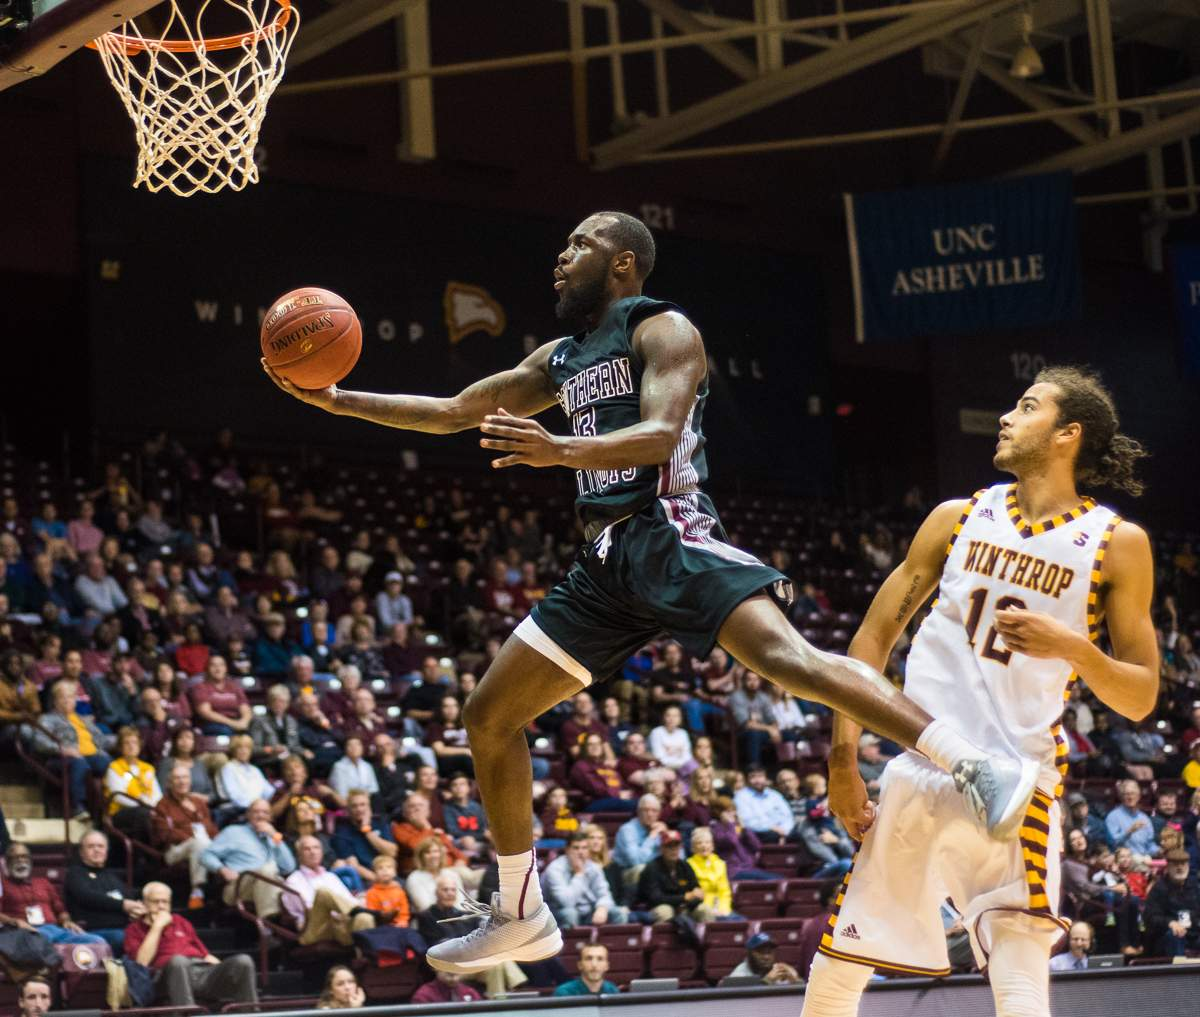 Off-season work pays dividends for Saluki guard Sean Lloyd